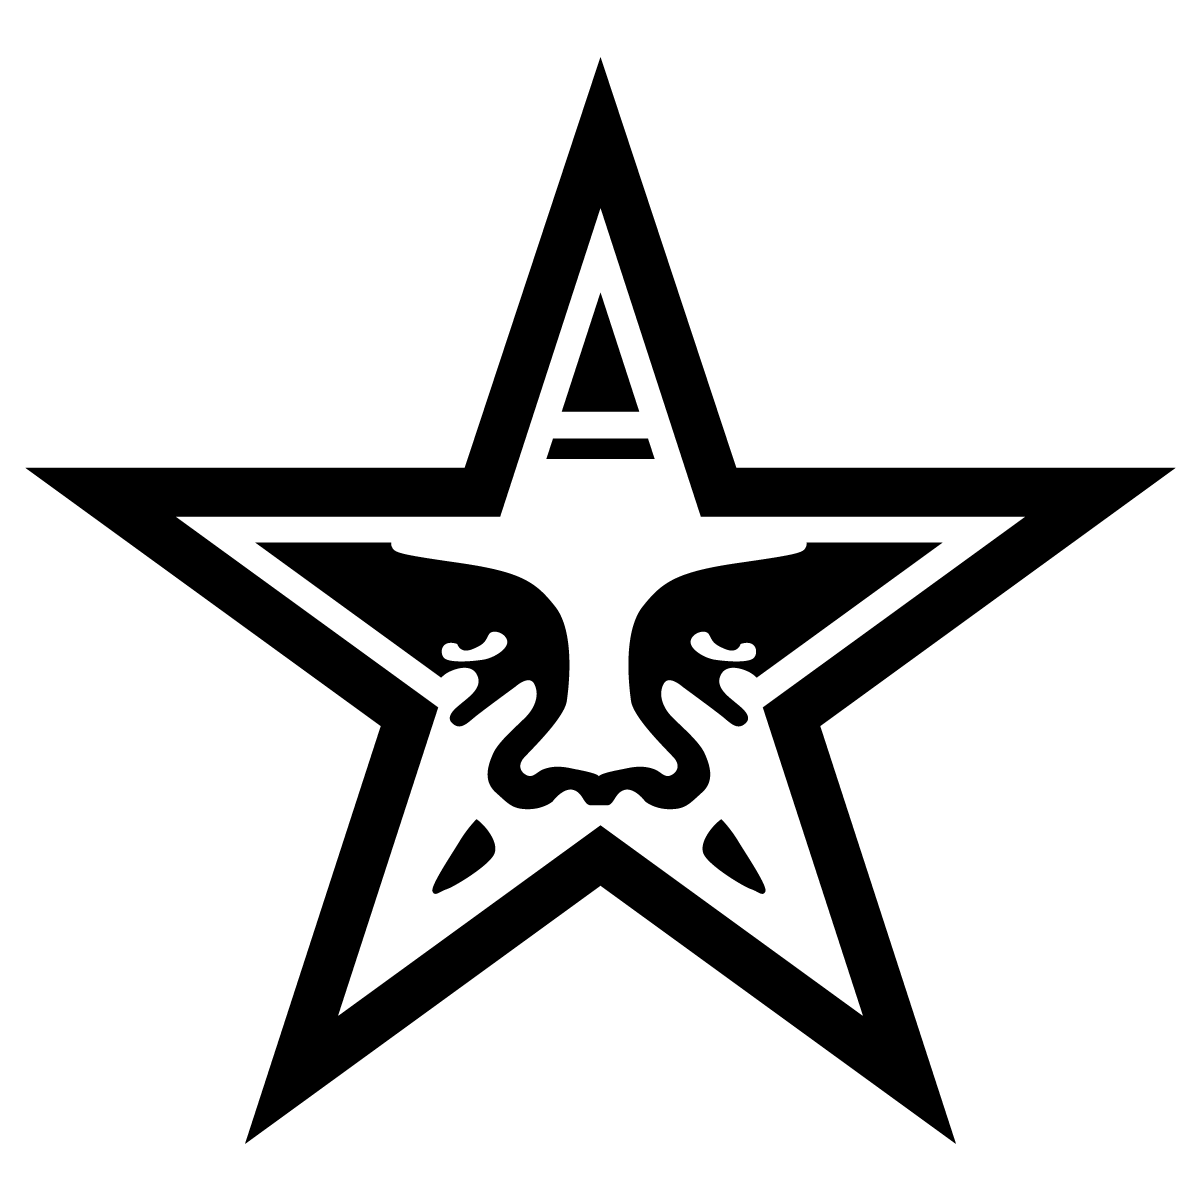 1200x1200 Obey Giant Star Black Logo Vector Free Vector Silhouette